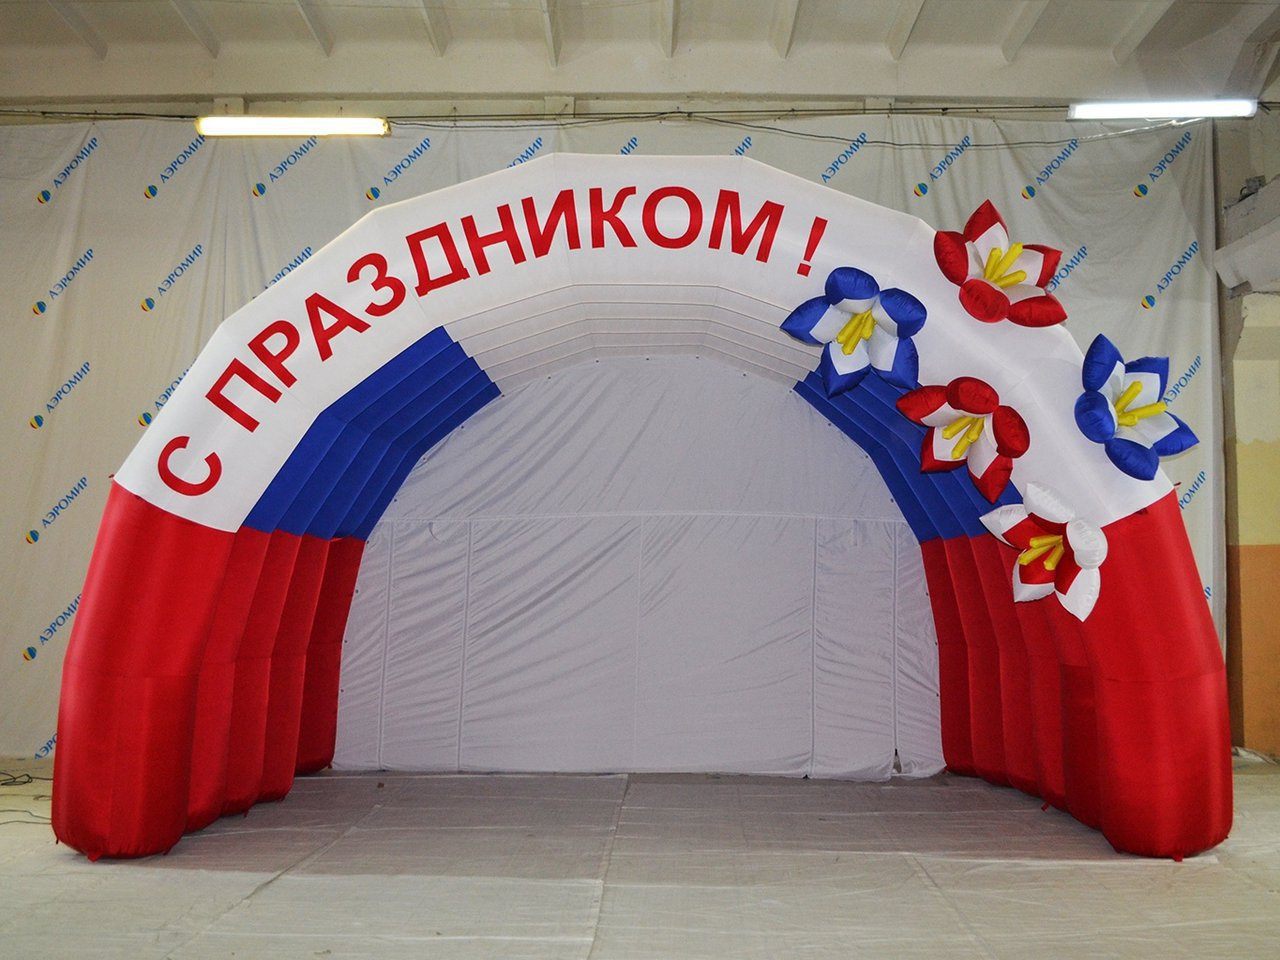 Inflatable tricolor scene with floral inflatable decor.